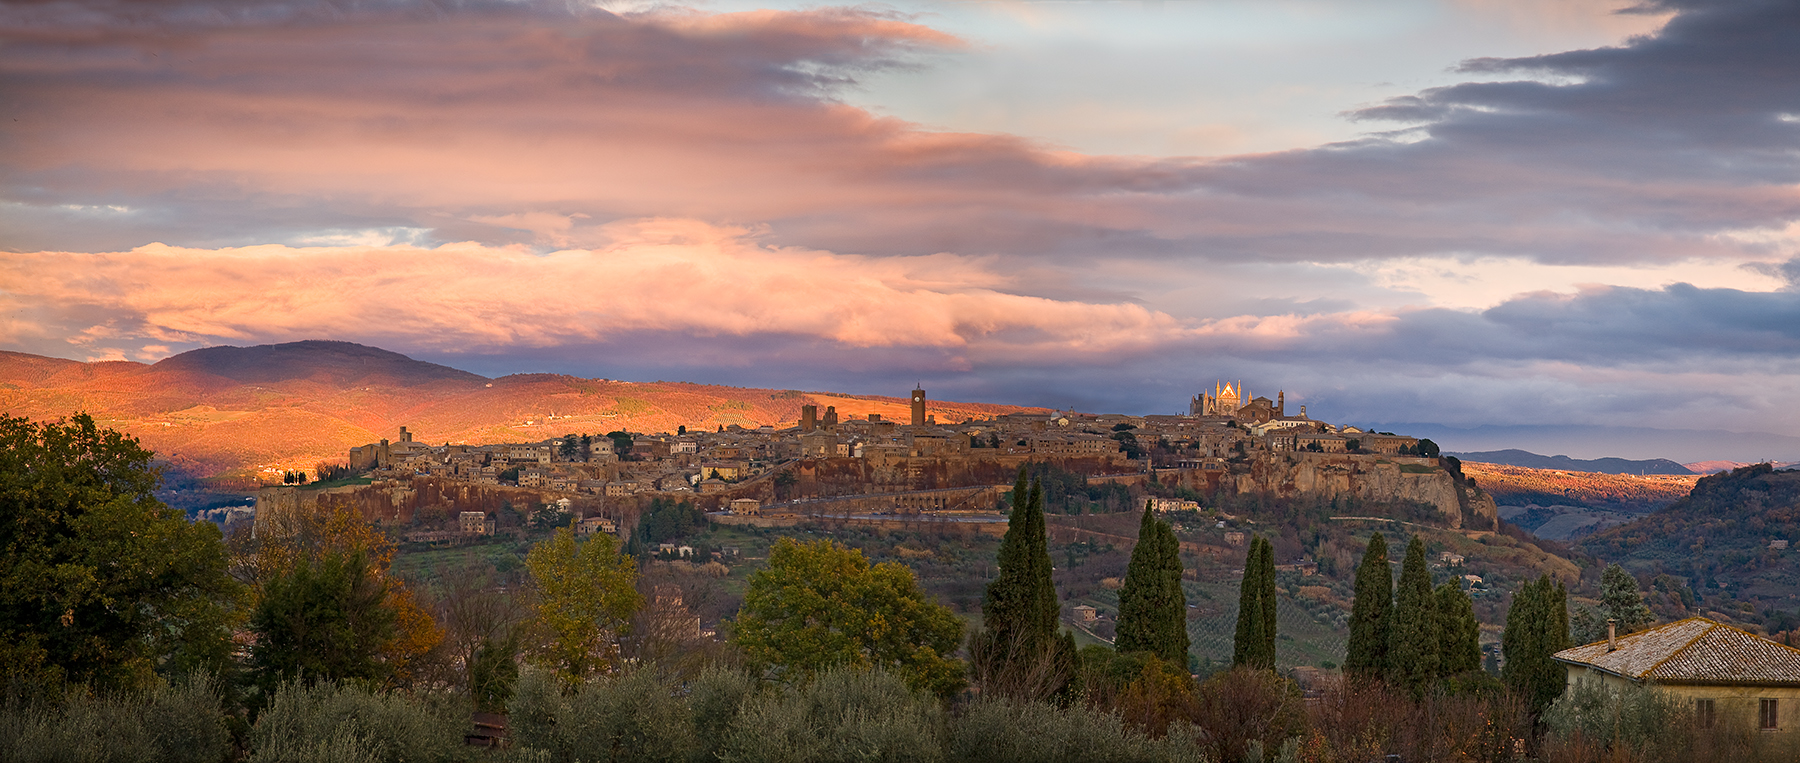 Orvieto sunset